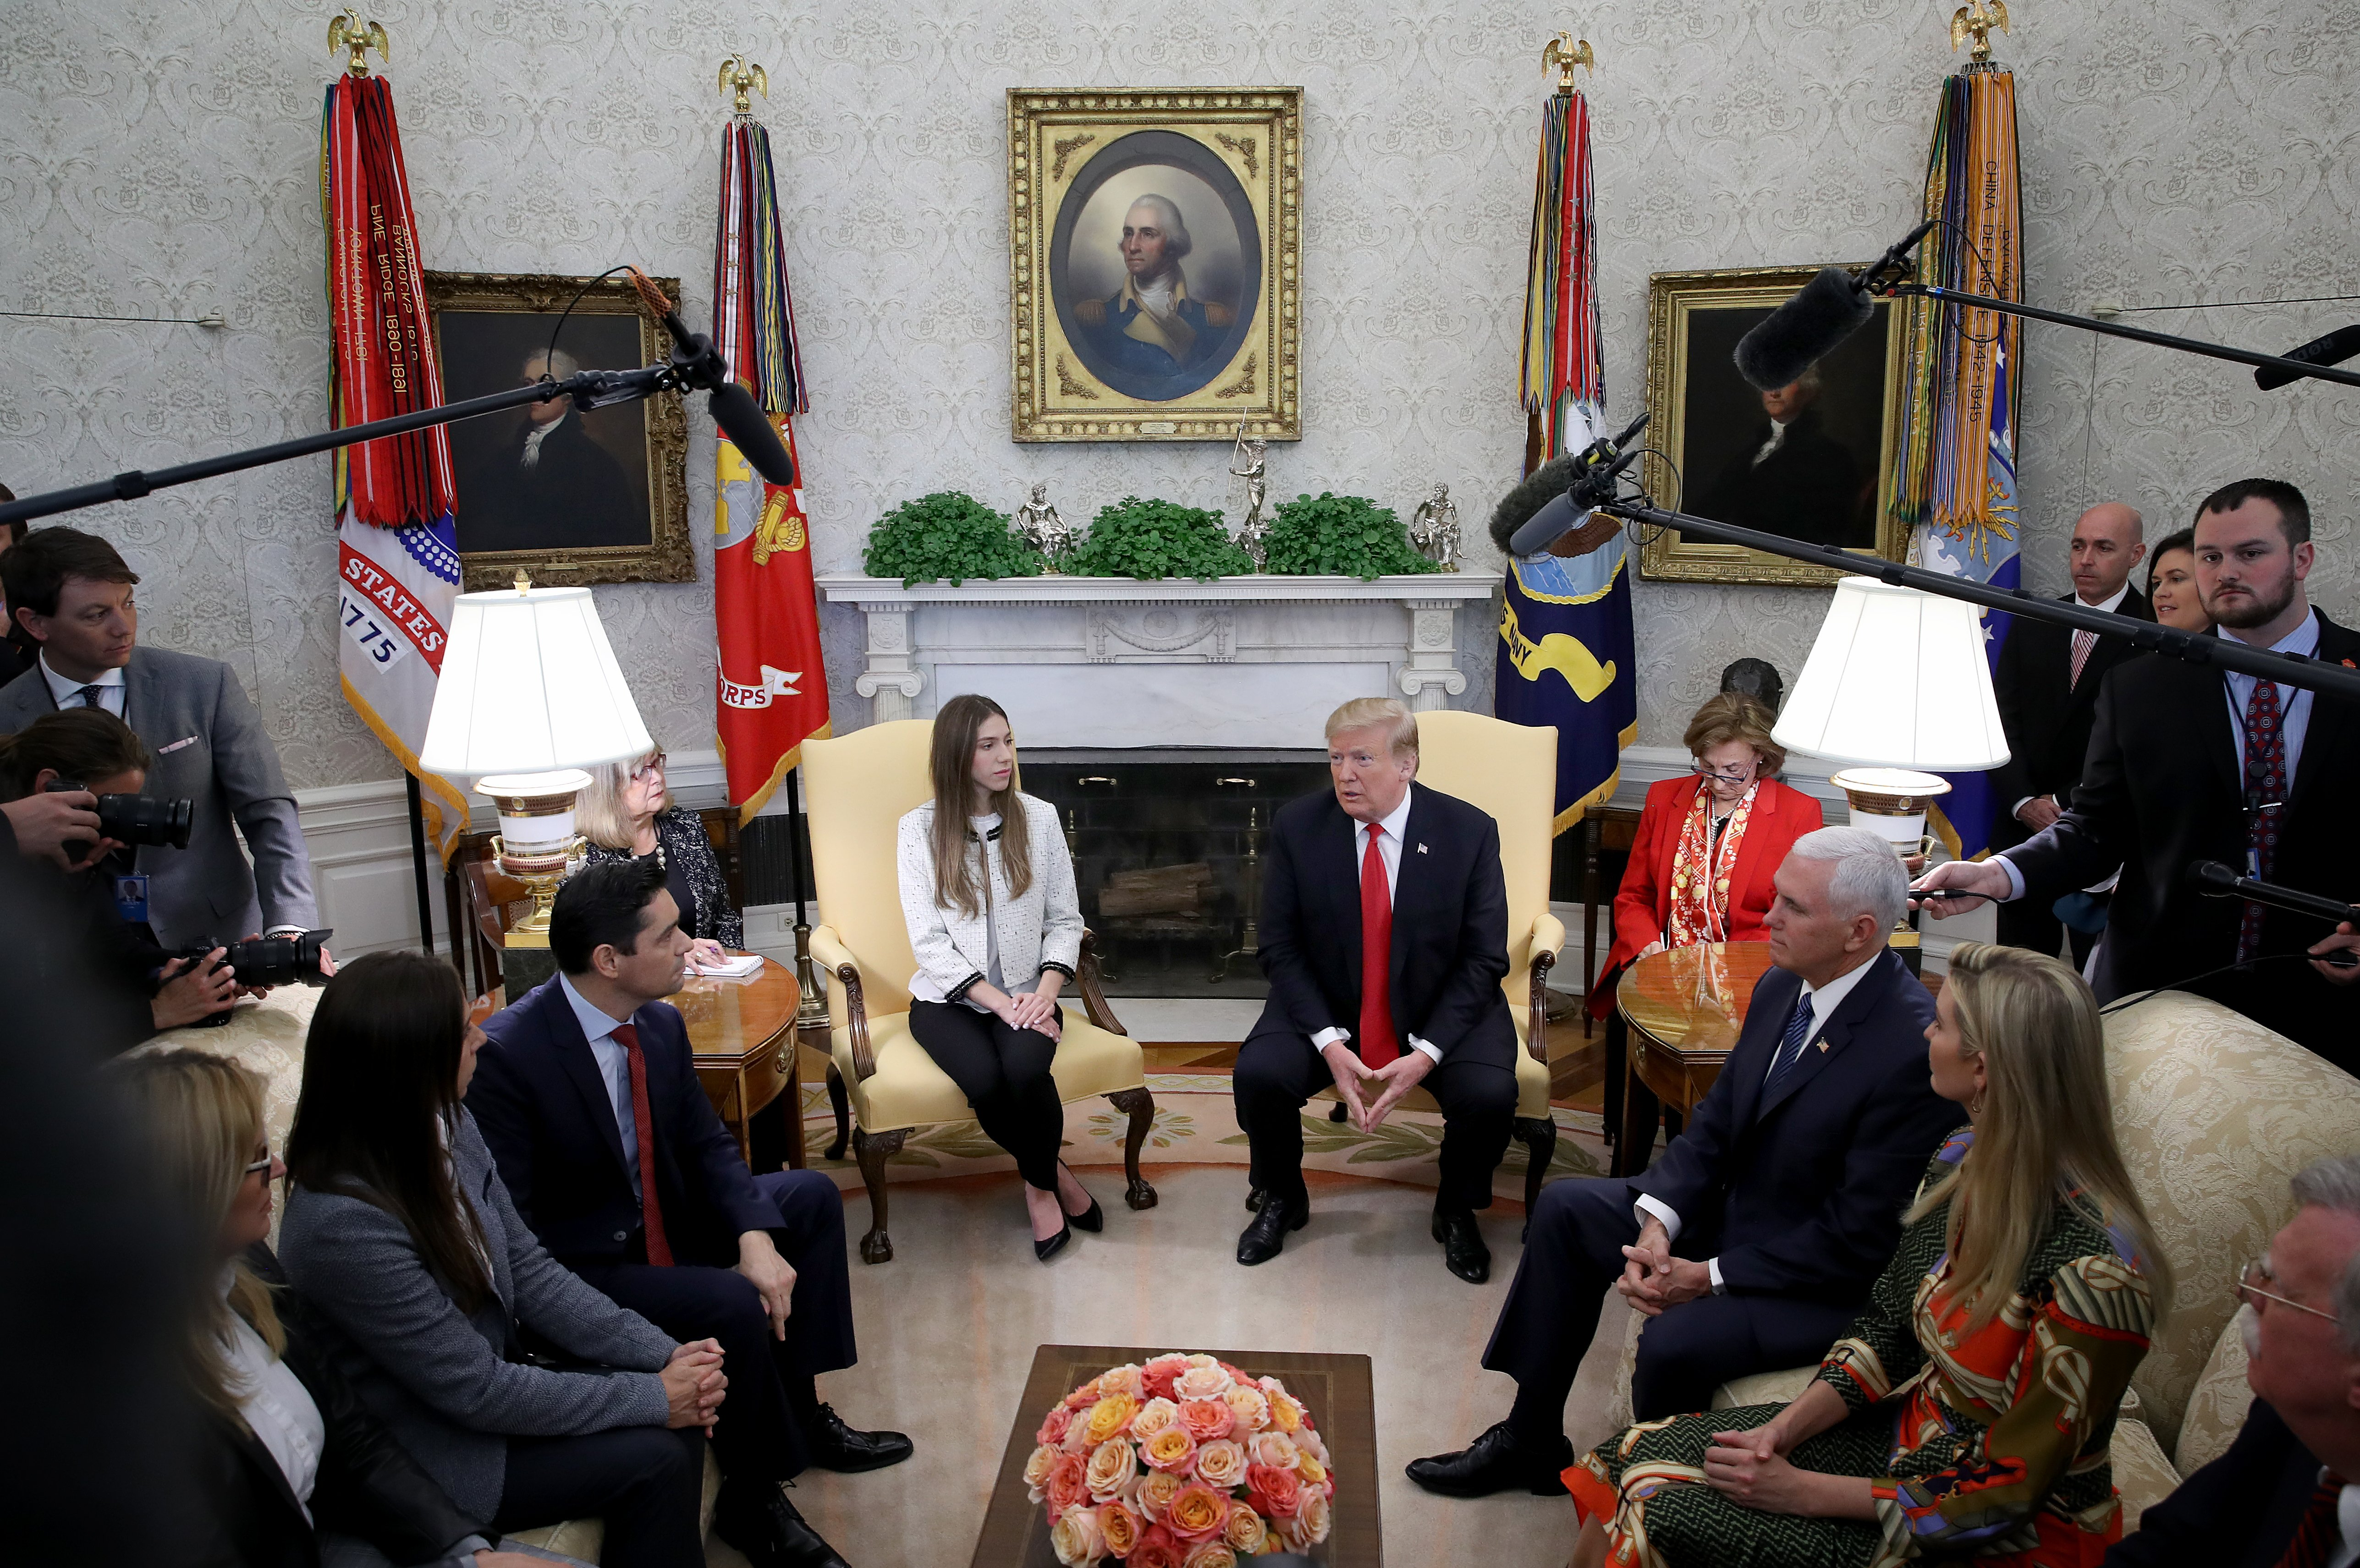 U.S. President Donald Trump and Vice President Mike Pence meet with Fabiana Rosales (L), the wife of Venezuelan opposition leader Juan Guaido, in the Oval Office of the White House March 27, 2019 in Washington, DC. (Photo by Win McNamee/Getty Images)